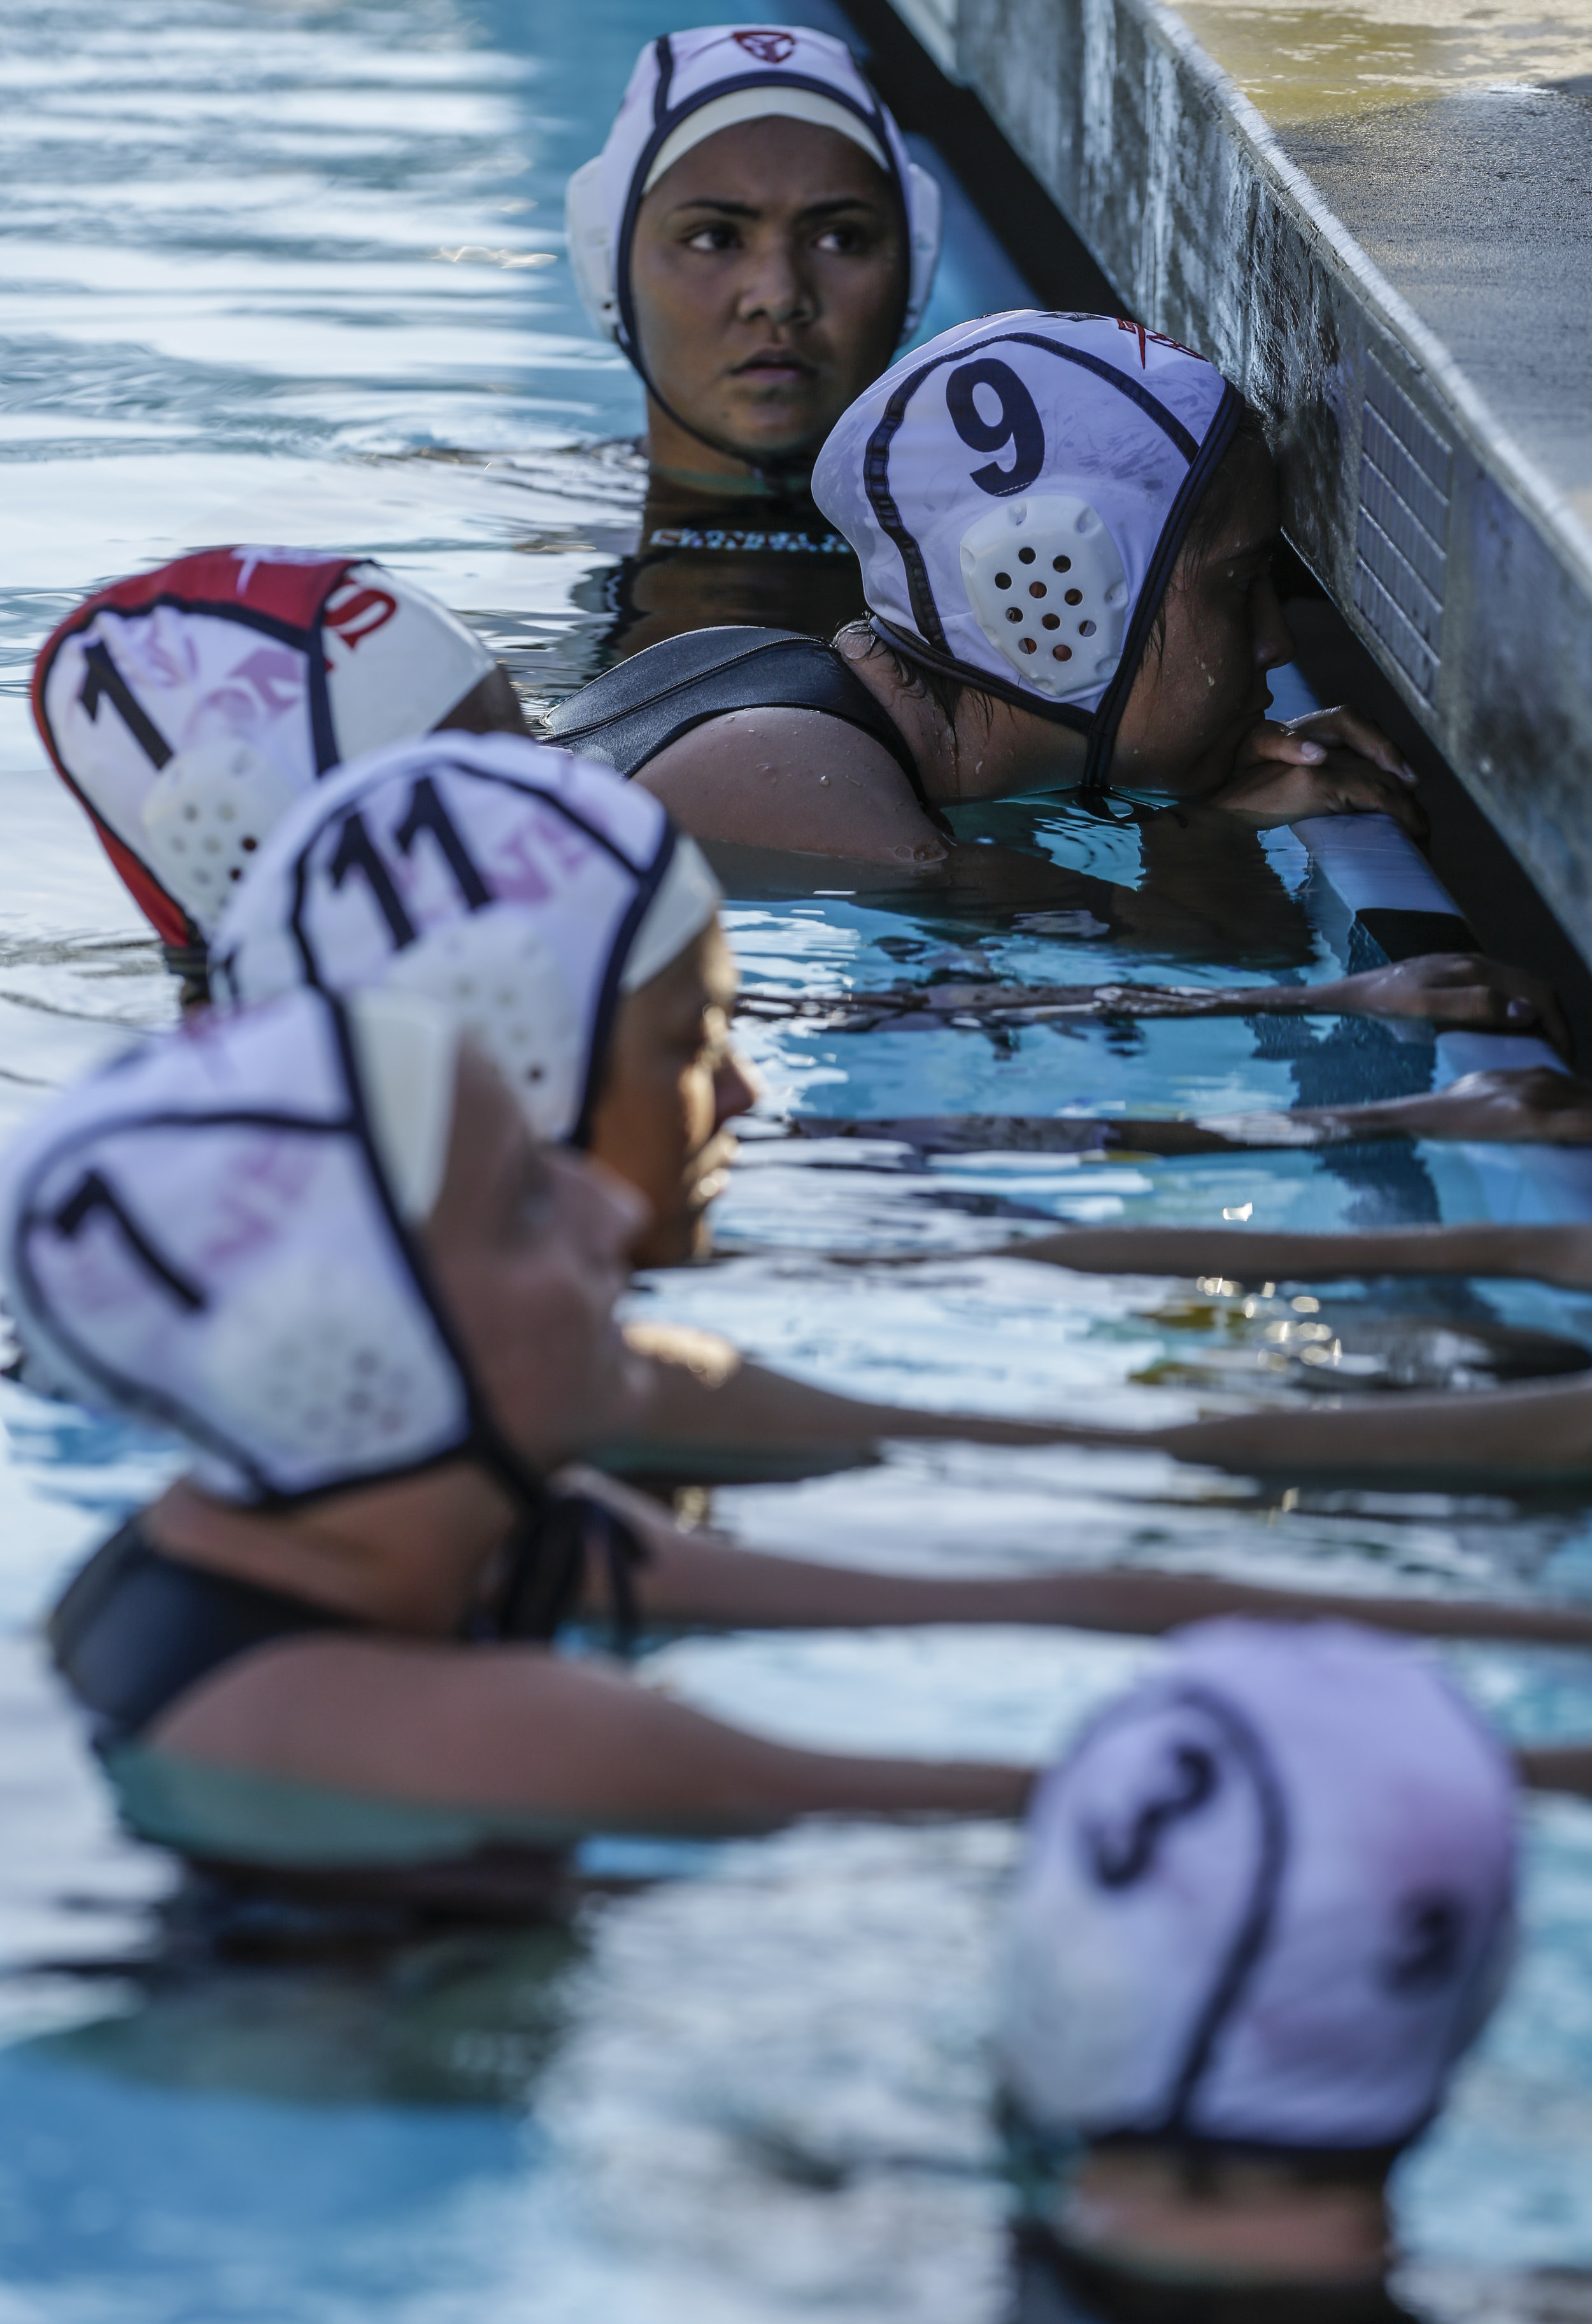 11-3-16-WaterPolo_C-183.jpg